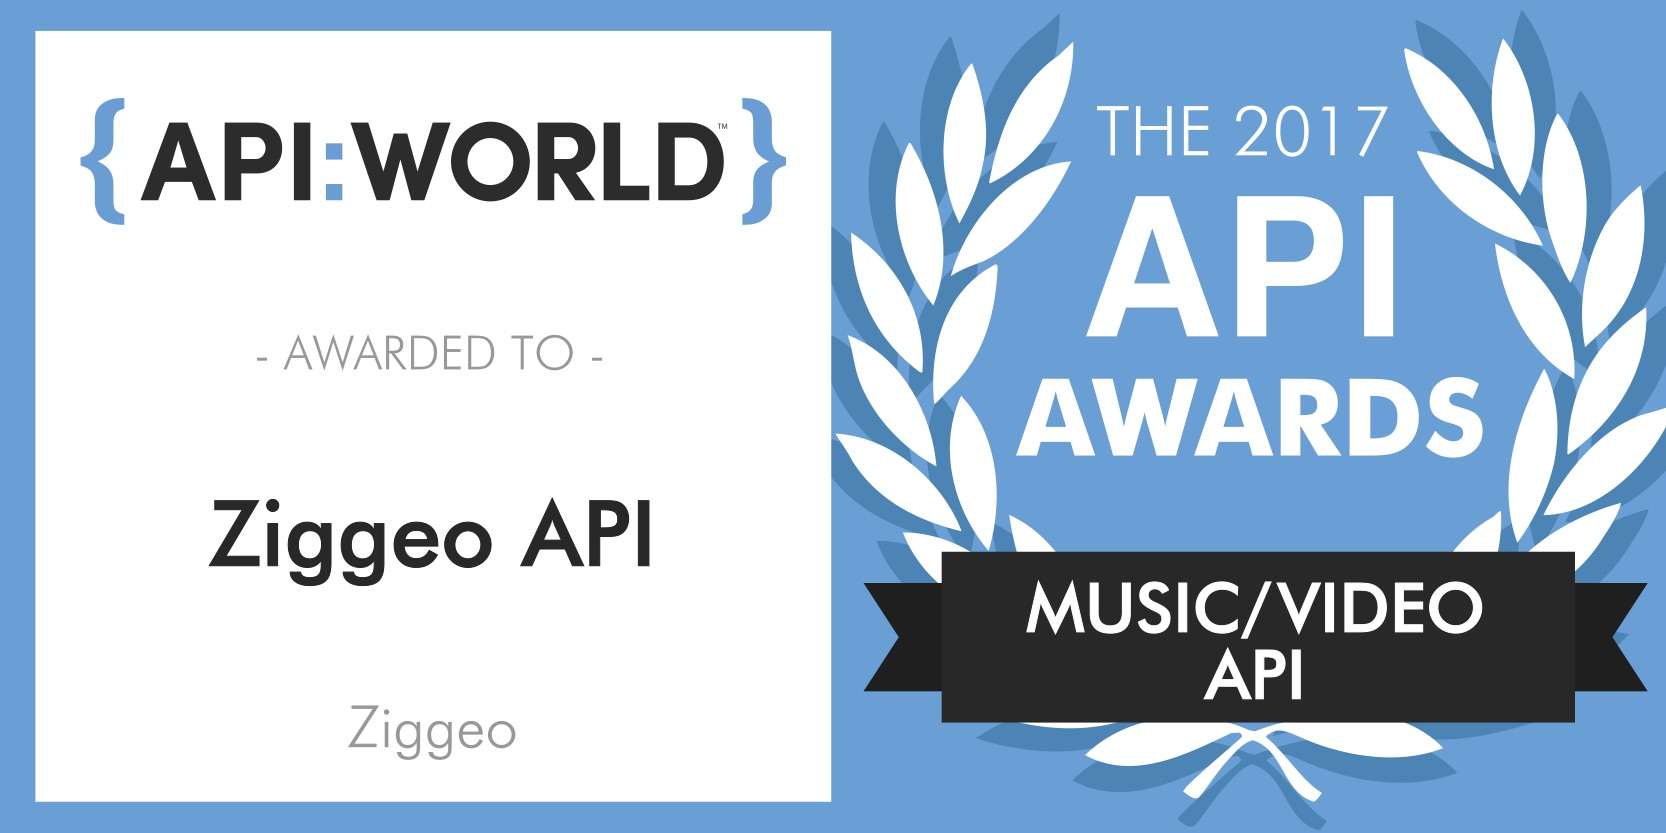 API World Award 2017